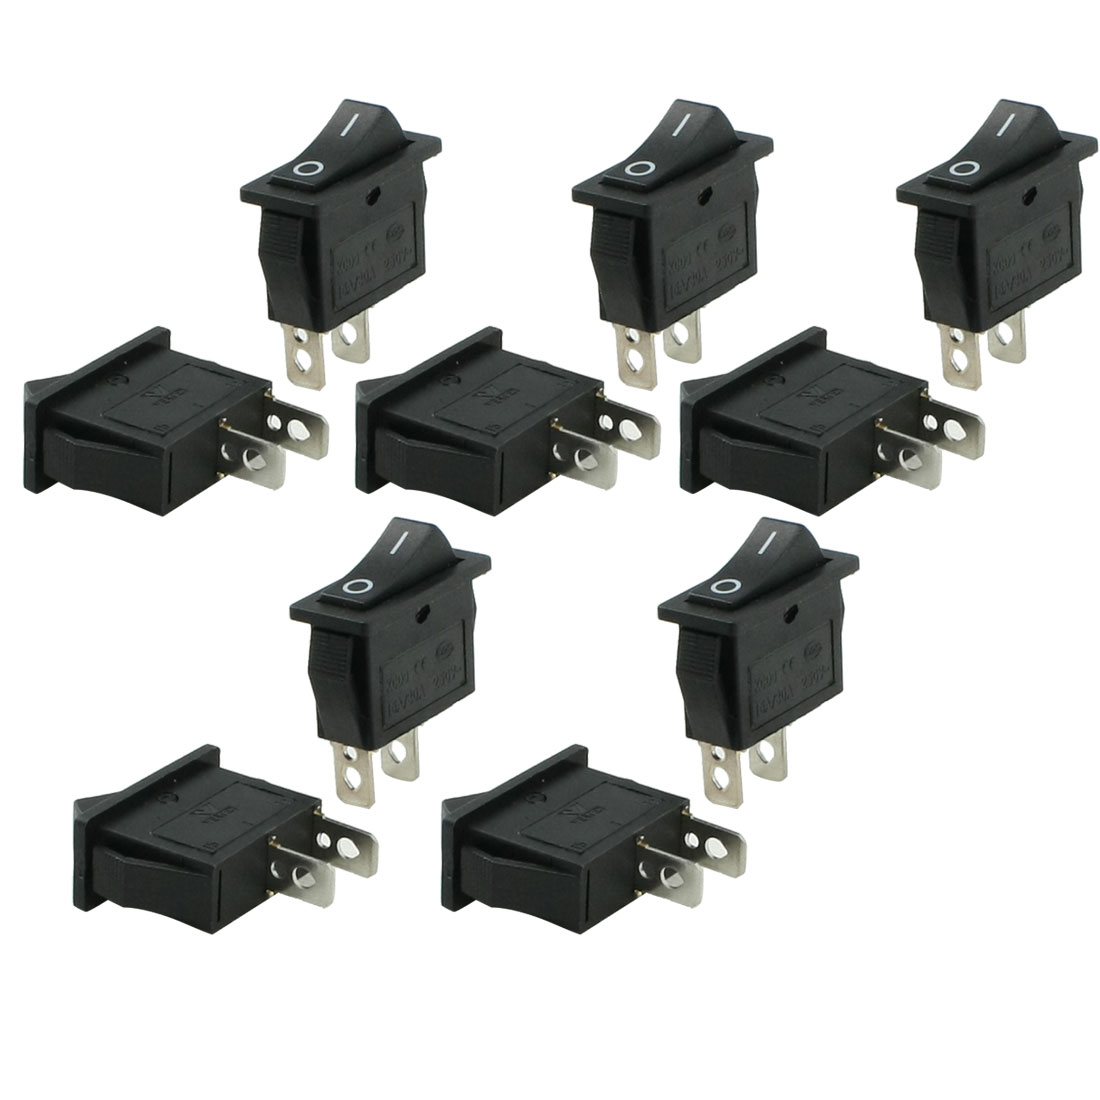 15A/30A 250V AC I/O 2 Position SPST Boat Rocker Switch 10 Pcs